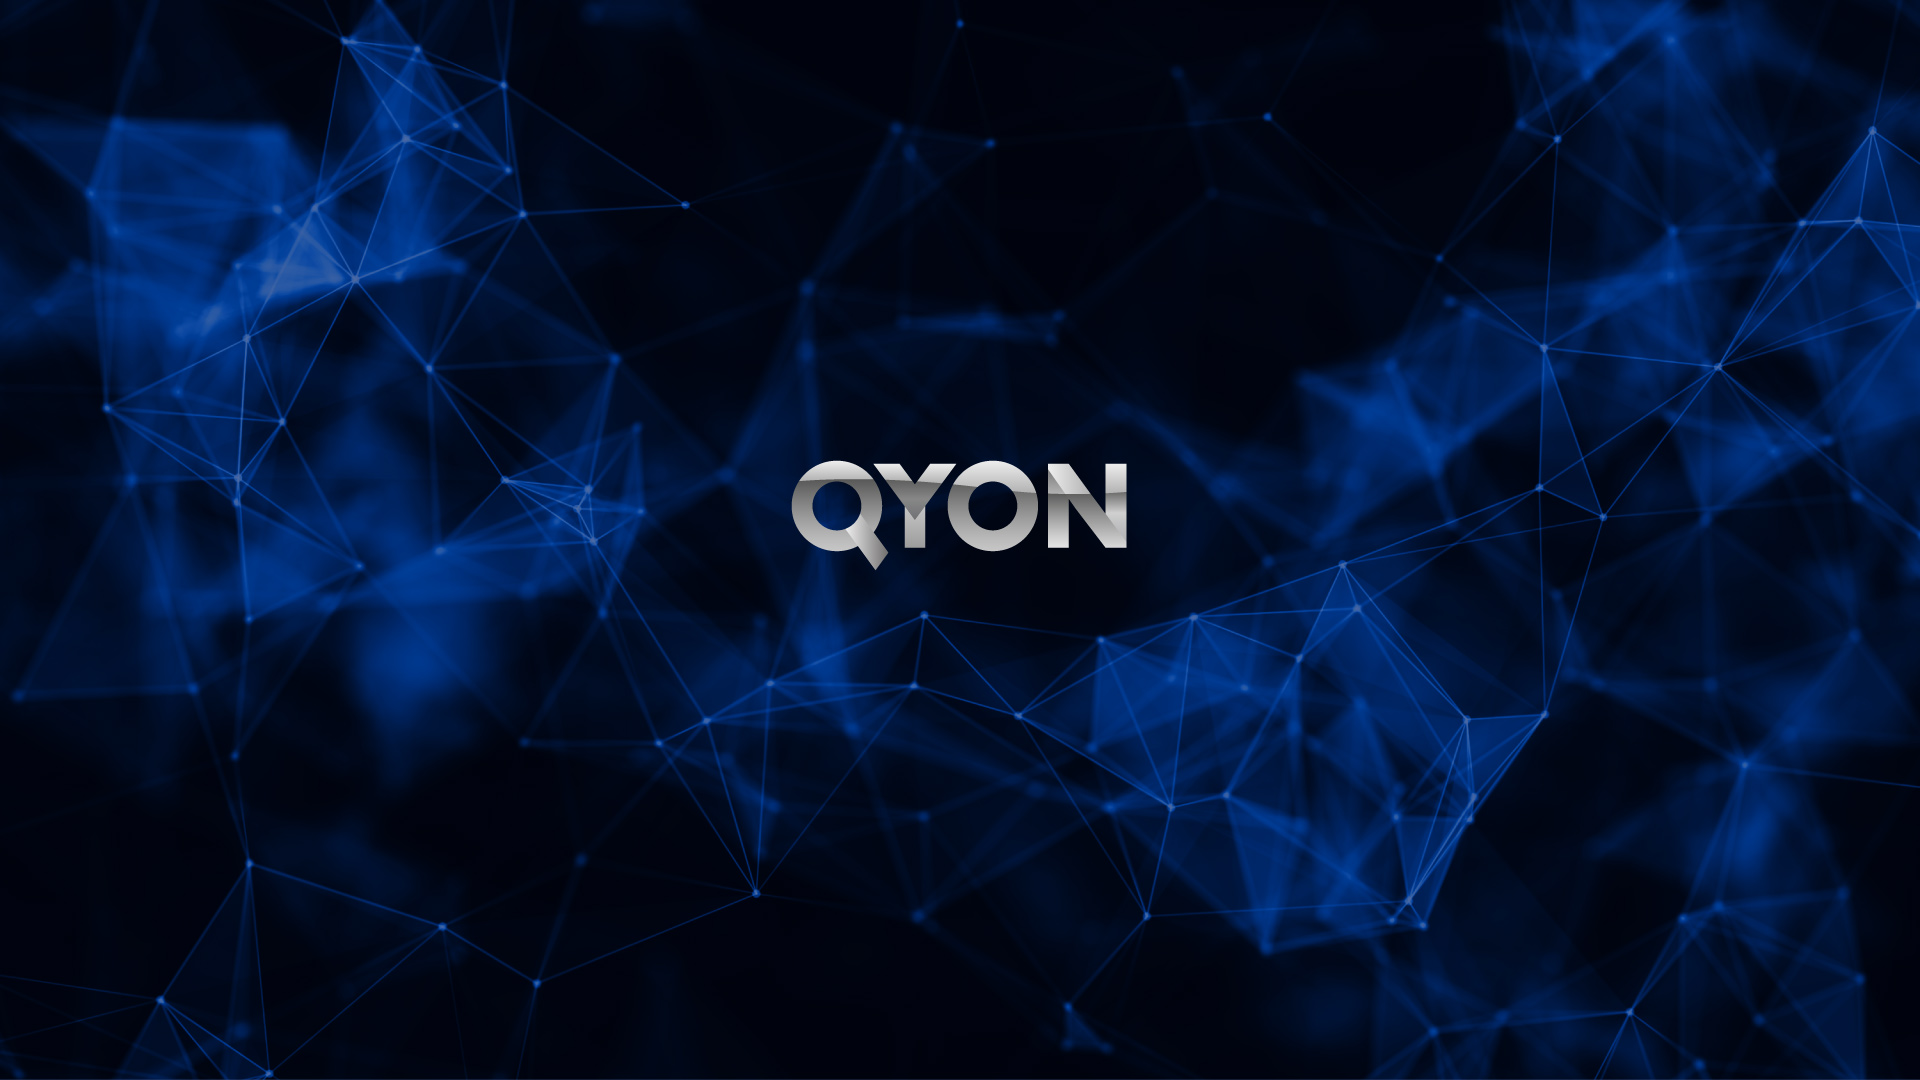 Wallpapers-QYON-1920x1080px_LO1